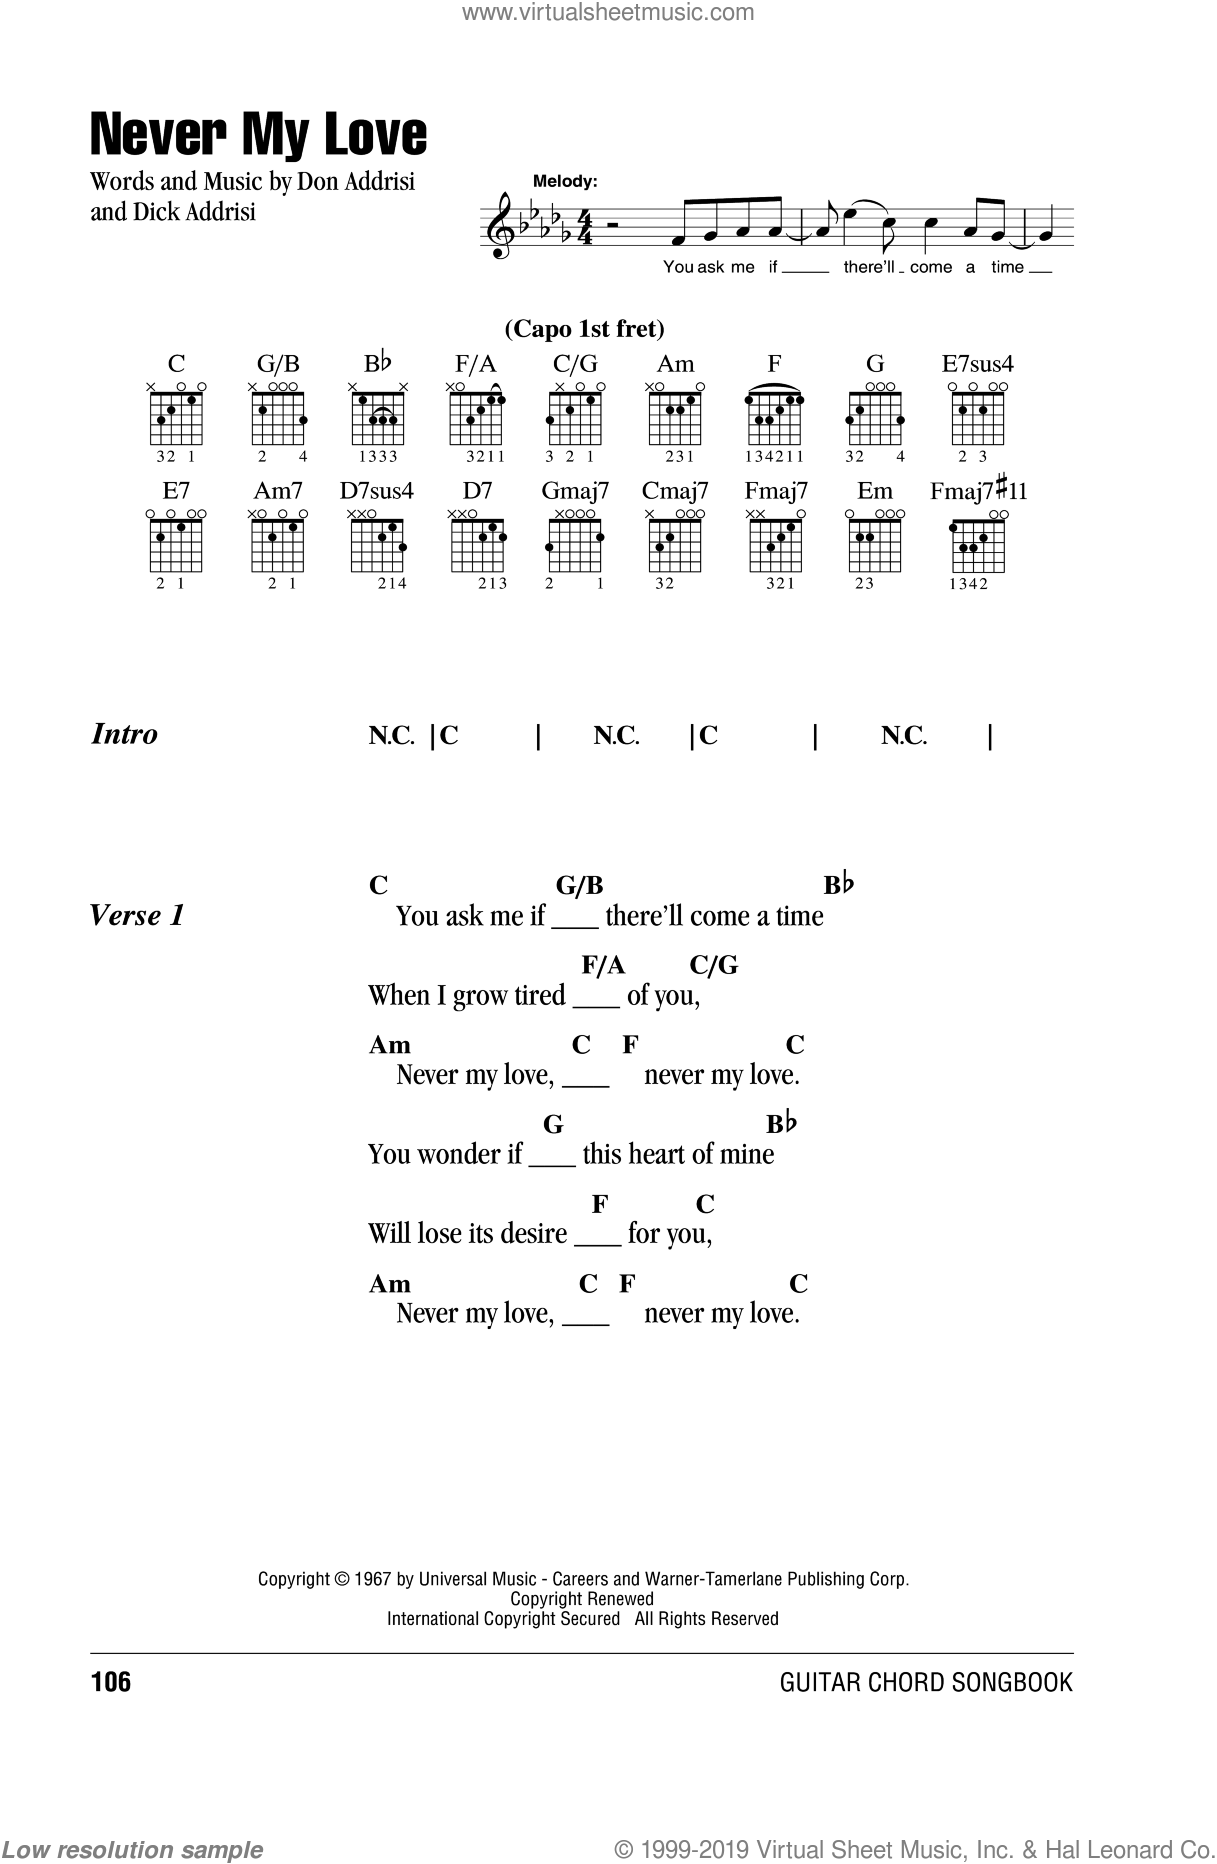 Never My Love sheet music for guitar (chords) by The Association, Blue Swede, The Fifth Dimension, Dick Addrisi and Don Addrisi, wedding score, intermediate skill level